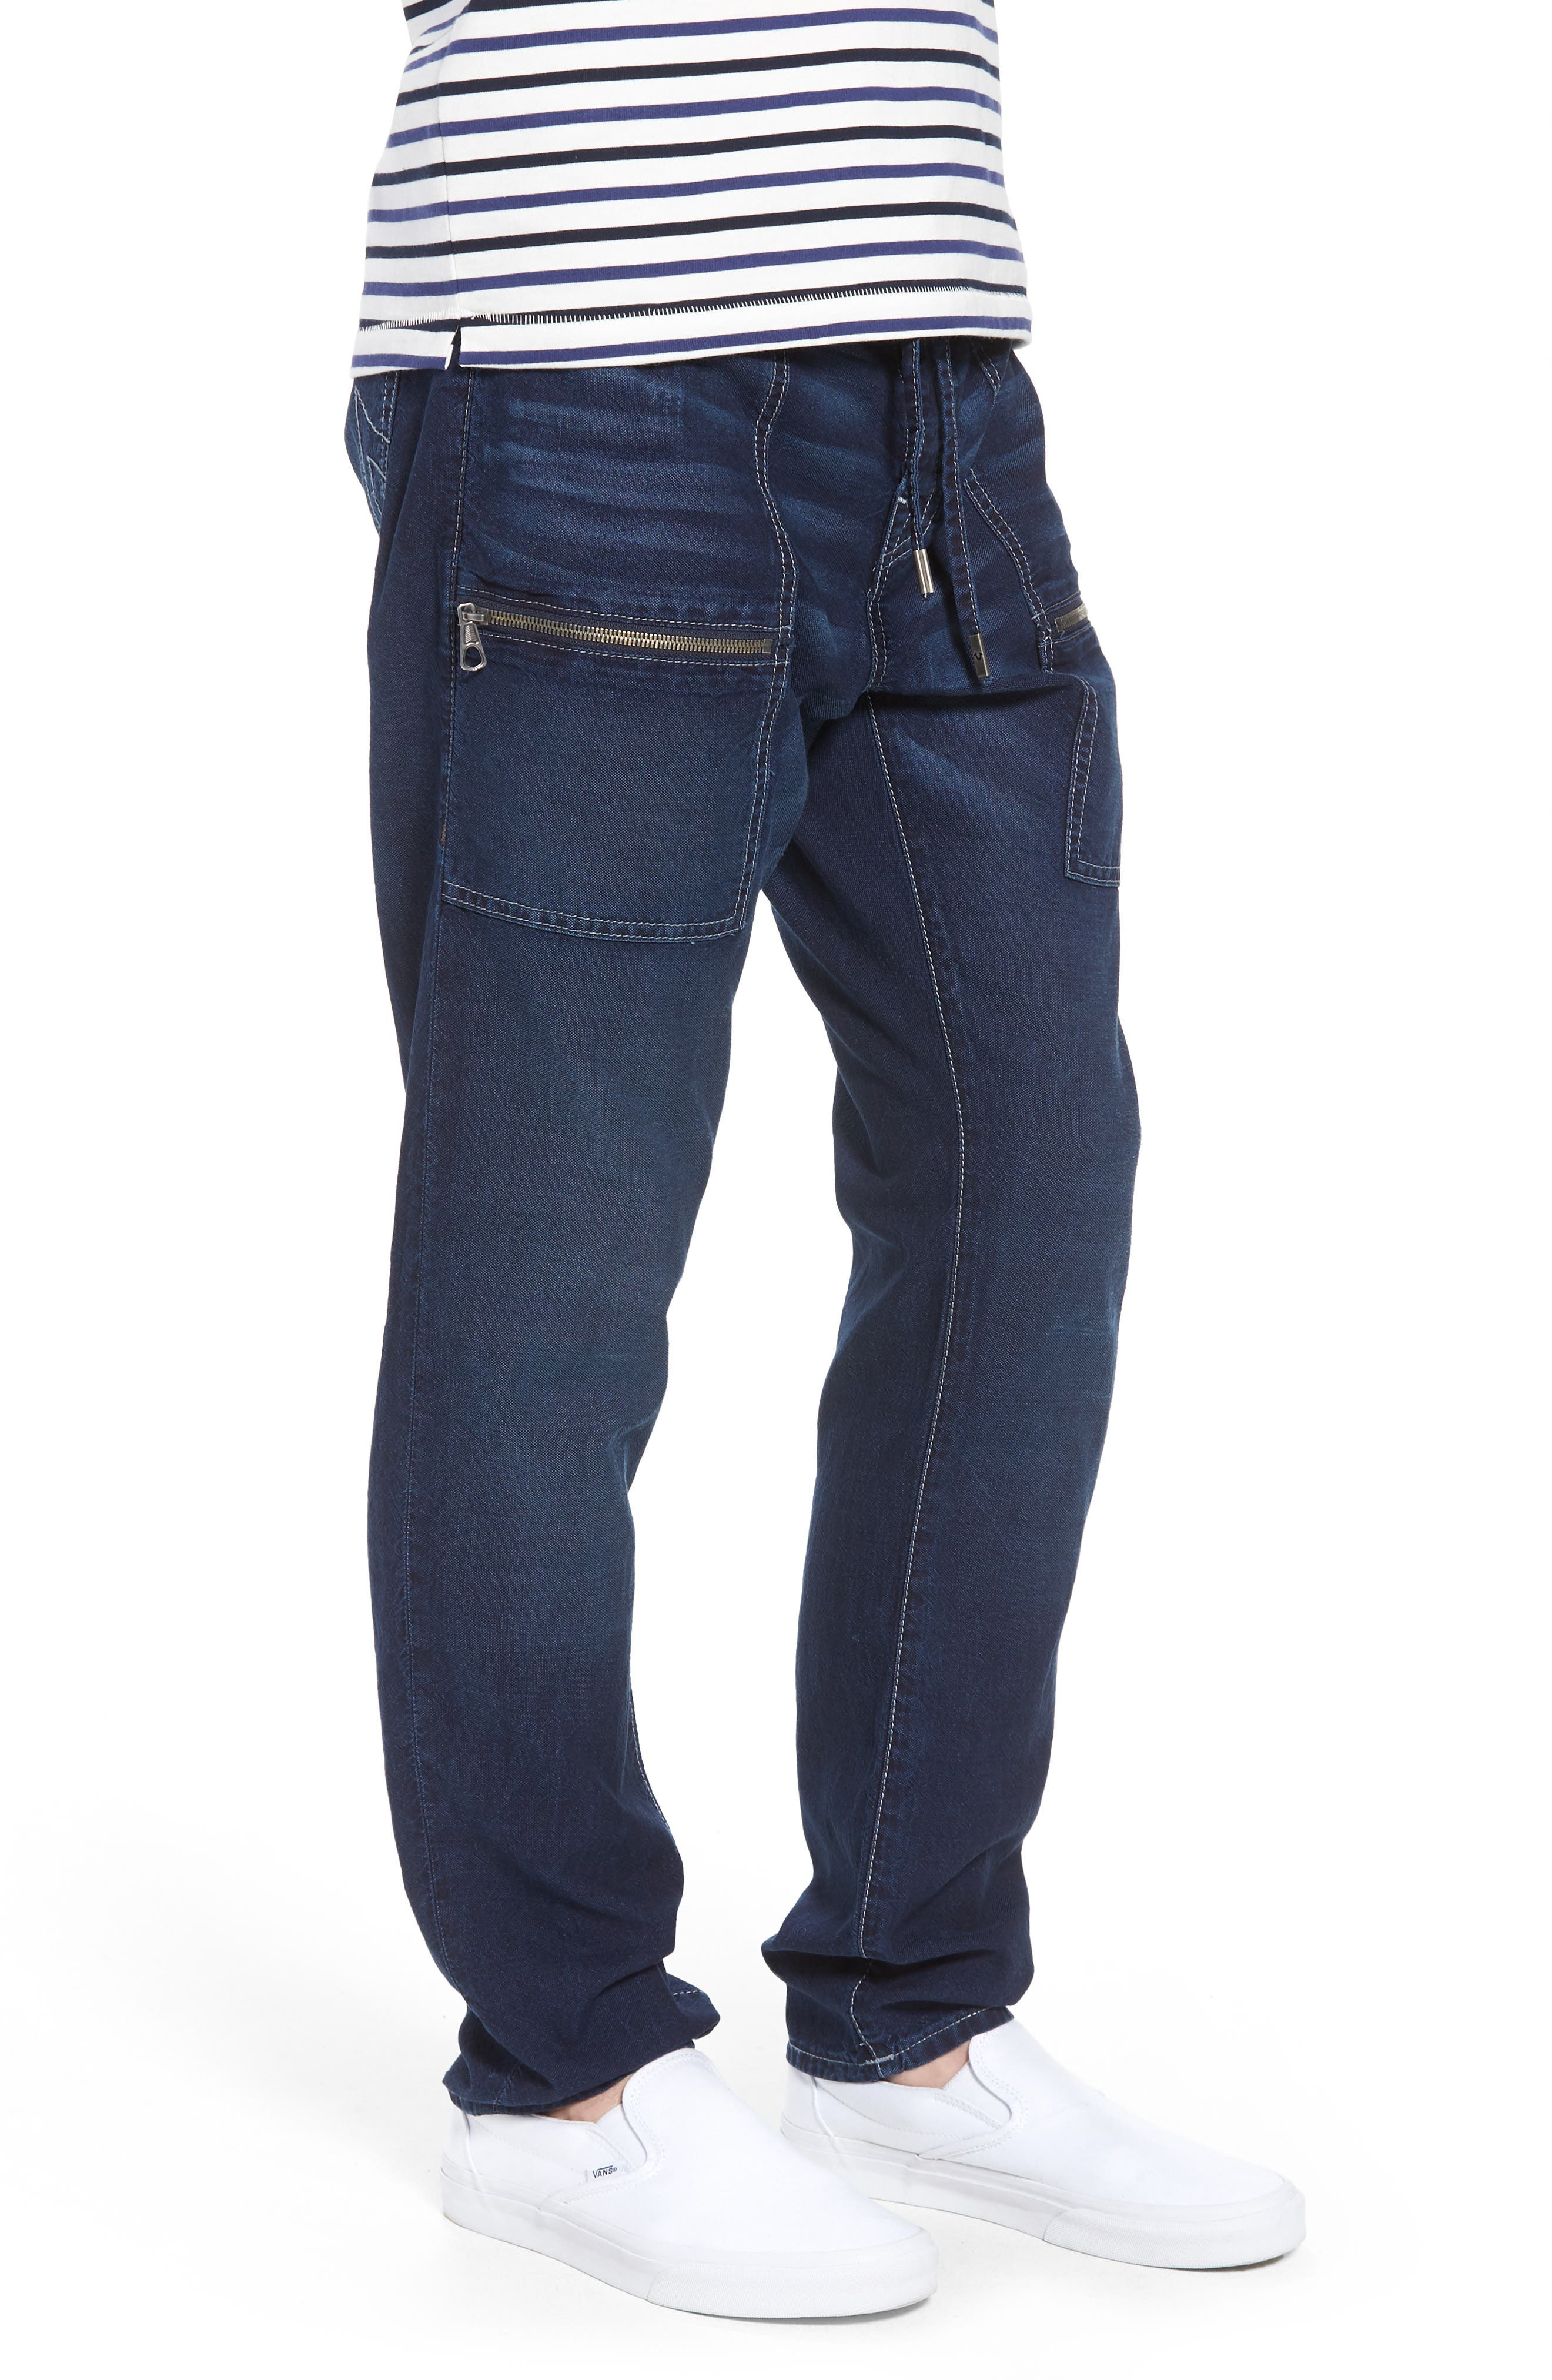 Trail Utility Jeans,                             Alternate thumbnail 3, color,                             Union Special